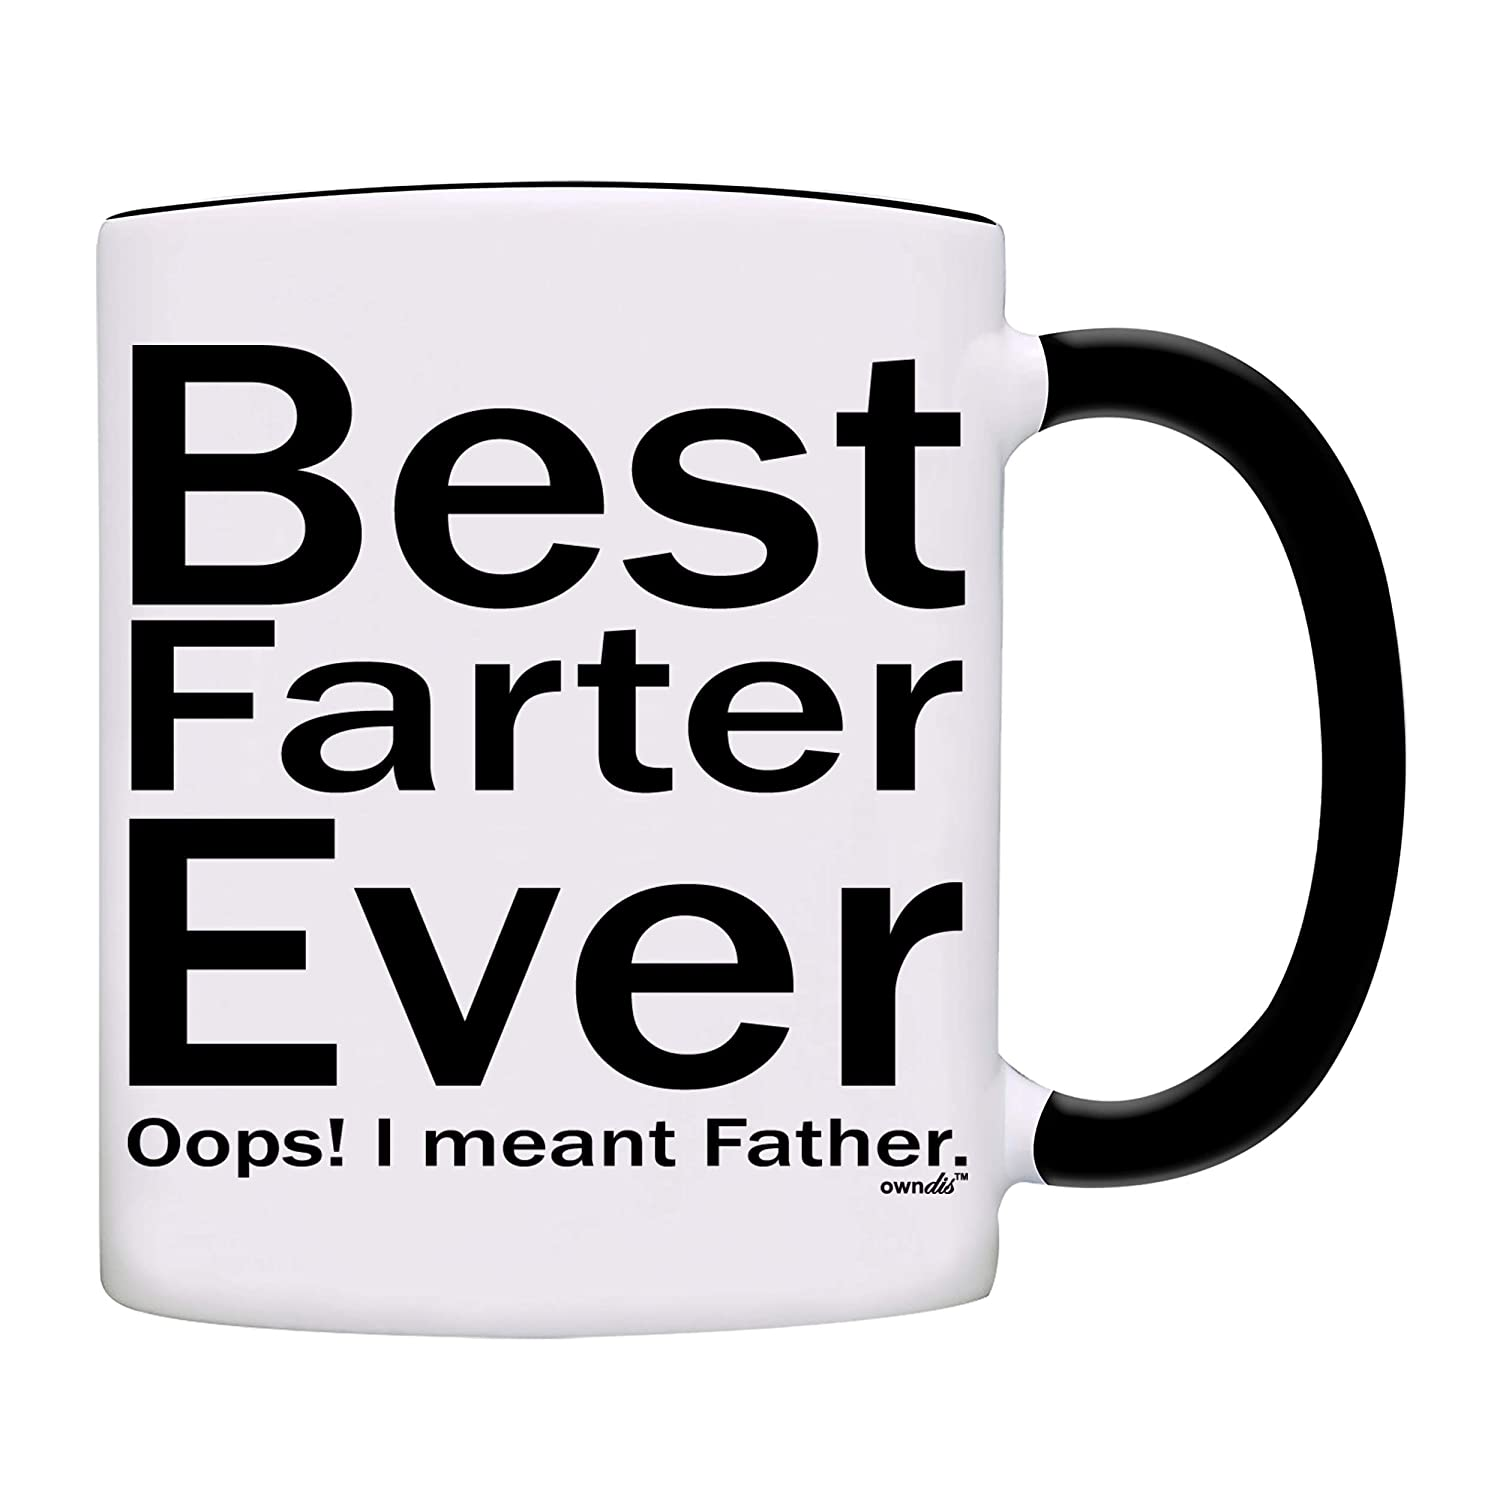 owndis父の日ギフトfor Dad Best Farter Ever Oops I Meant父ギフトコーヒー/ティーカップ ブラック 0032-2  ブラック B06XP77NTT